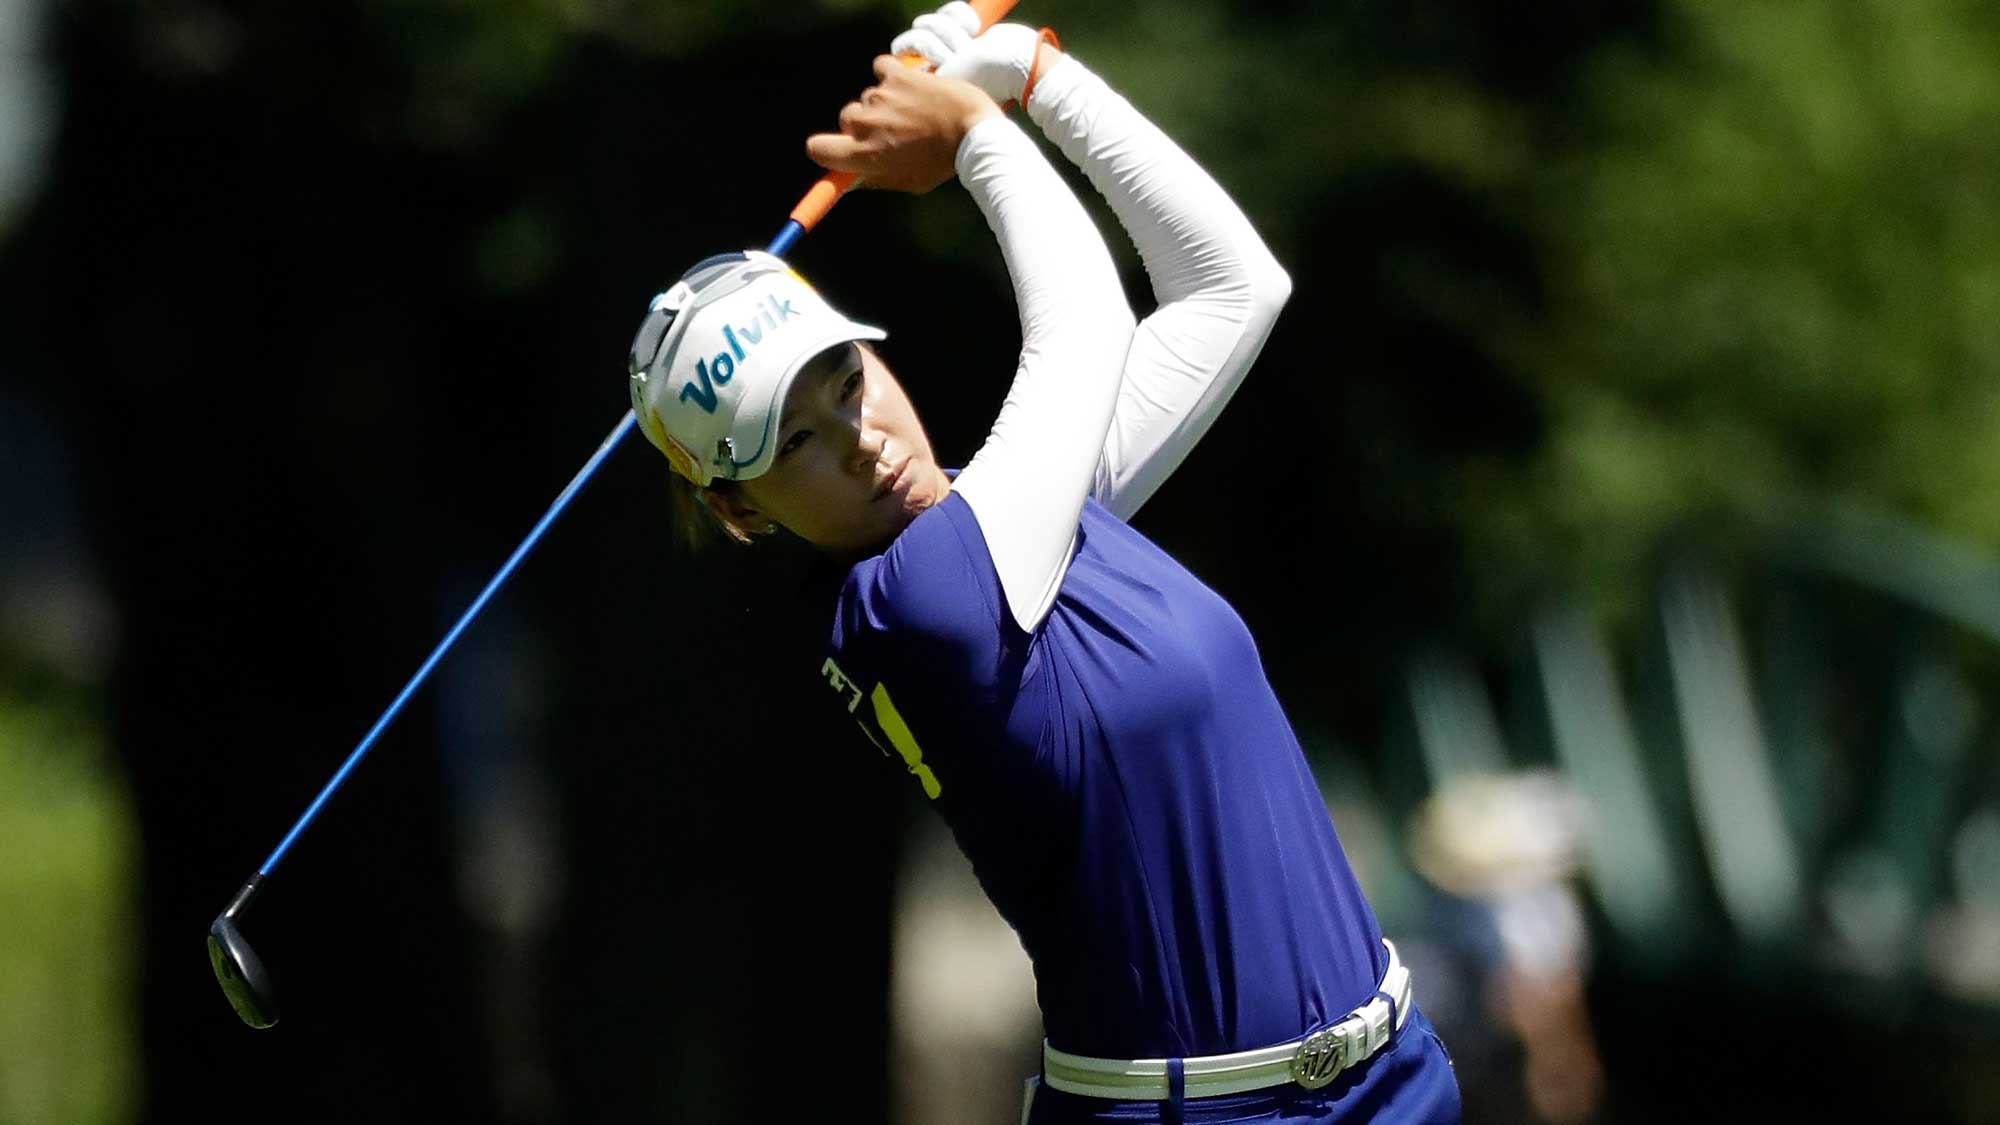 Chella Choi of South Korea hits her approach shot on the fourth hole during the final round of the 2017 KPMG PGA Championship